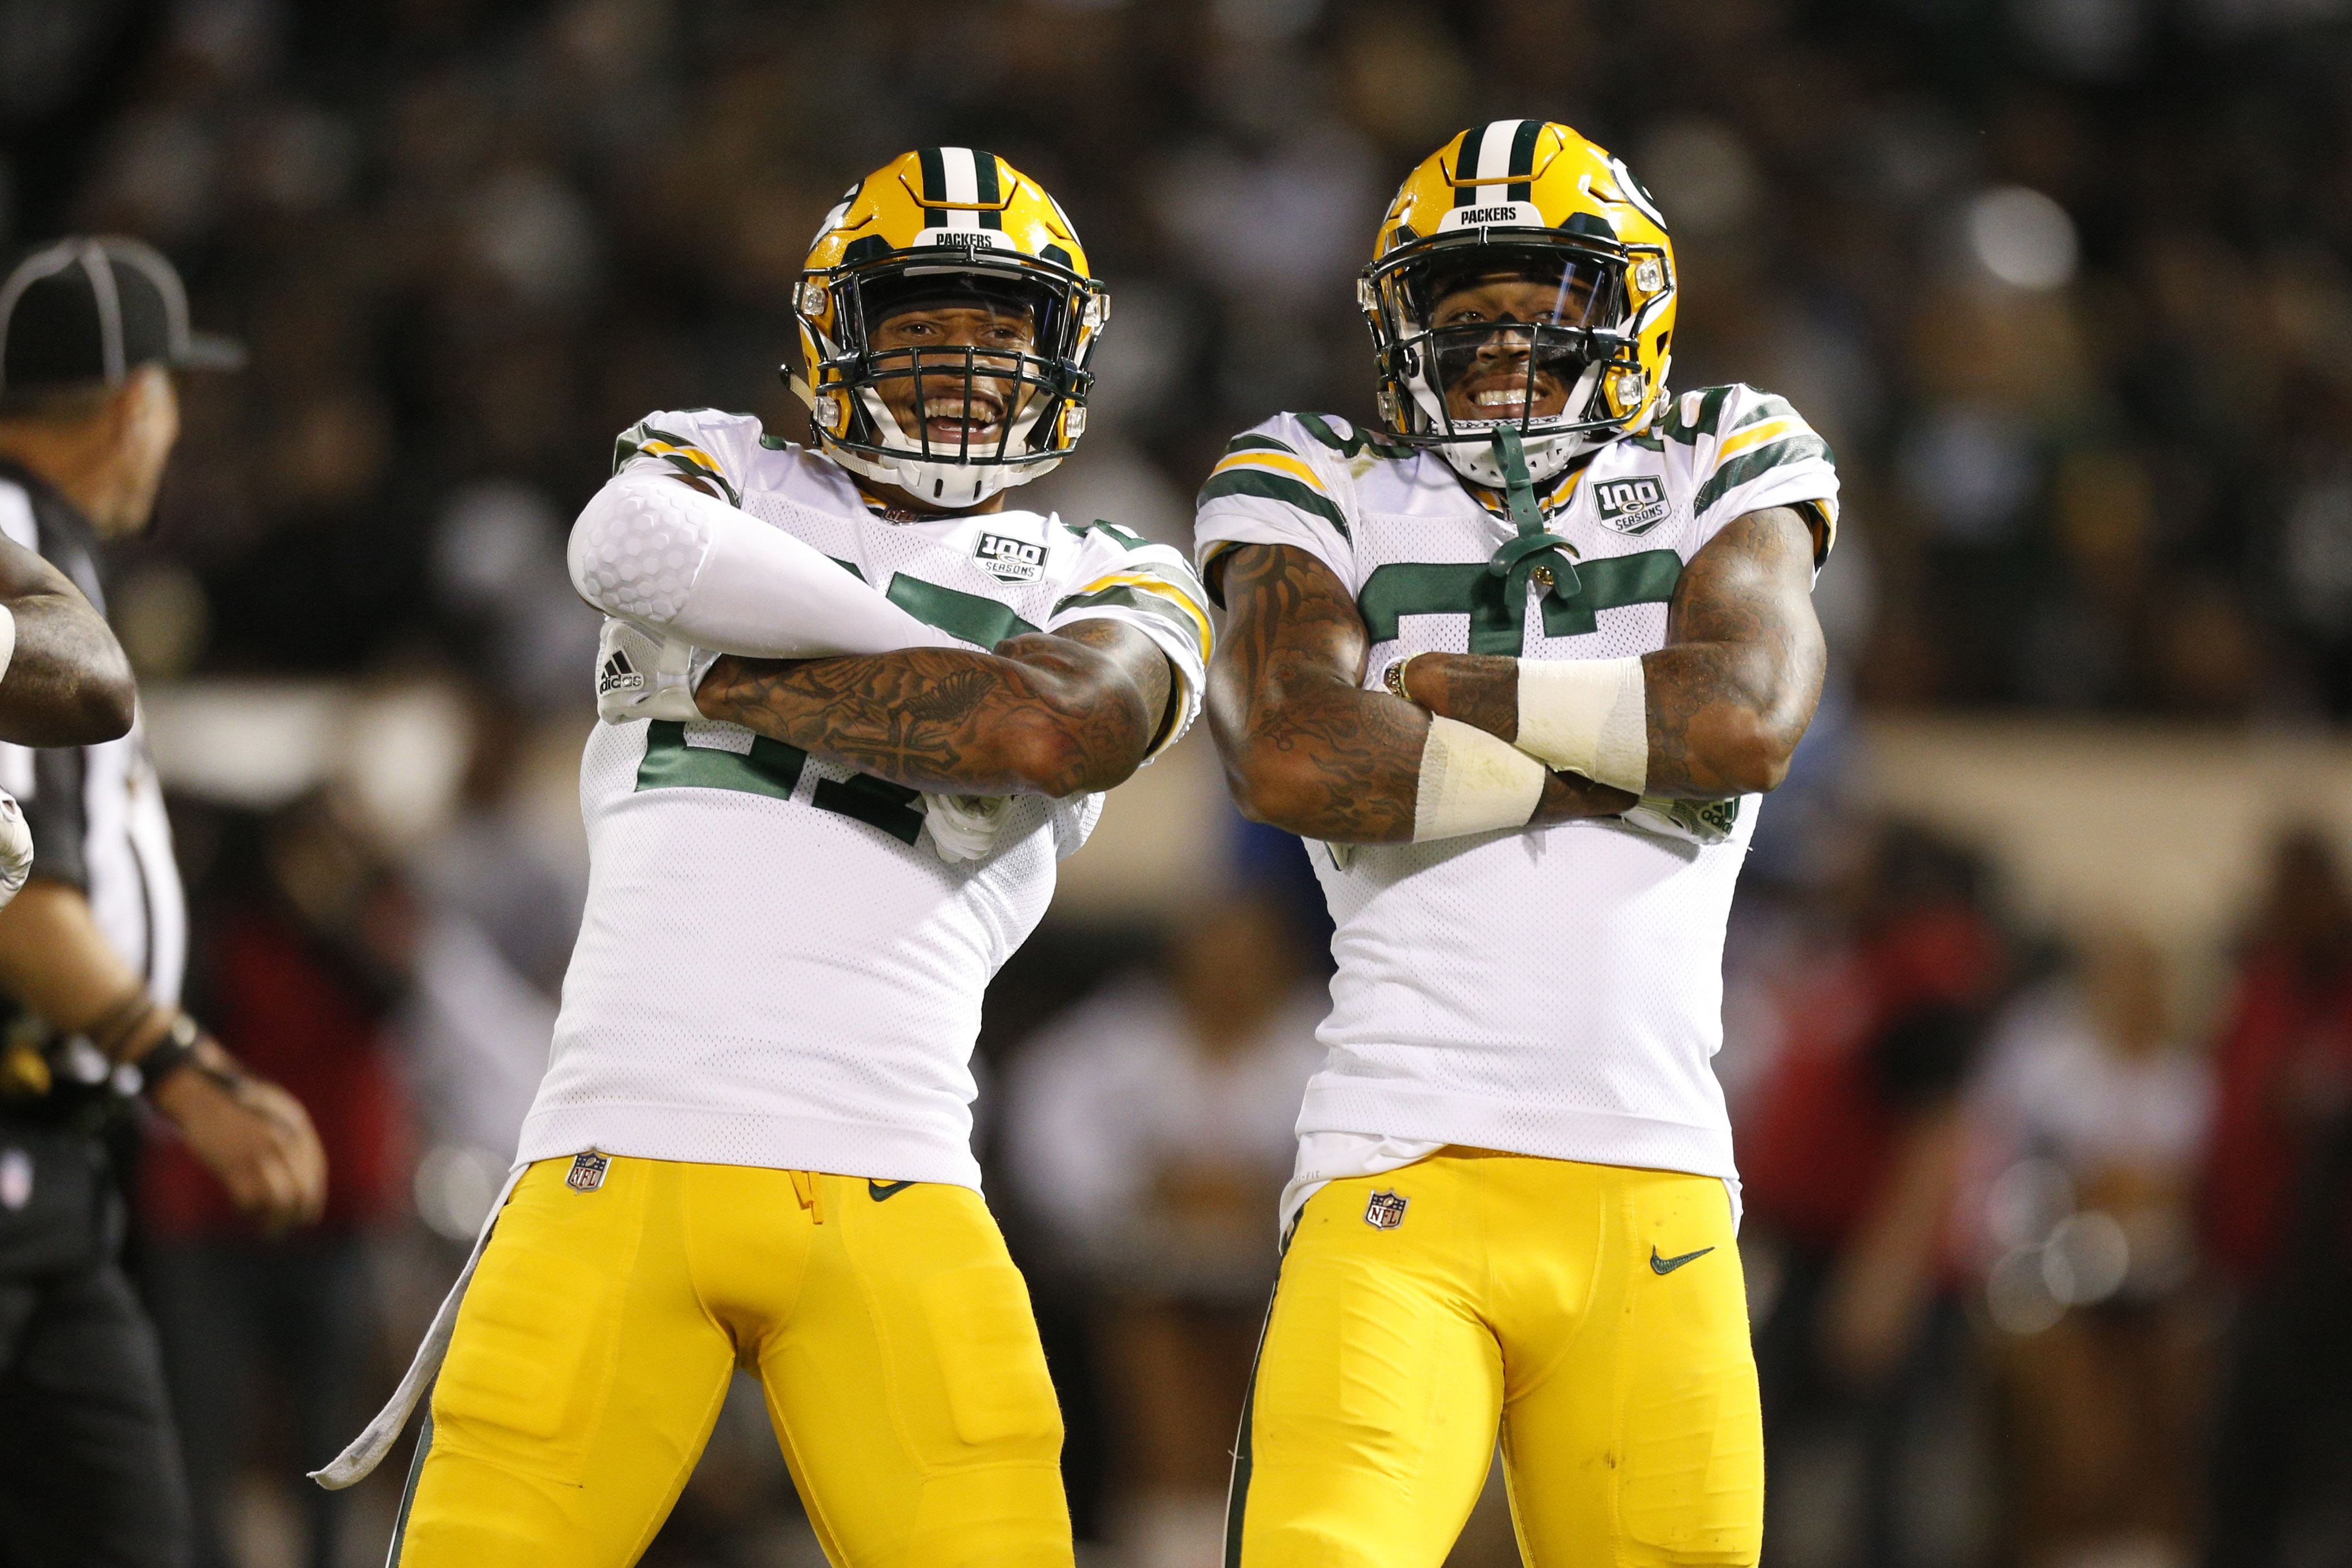 Aug 24, 2018; Oakland, CA, USA; Green Bay Packers cornerback Jaire Alexander (23) celebrates with safety Josh Jones (27) after intercepting a pass against the Oakland Raiders in the second quarter at Oakland Coliseum. Mandatory Credit: Cary Edmondson-USA TODAY Sports